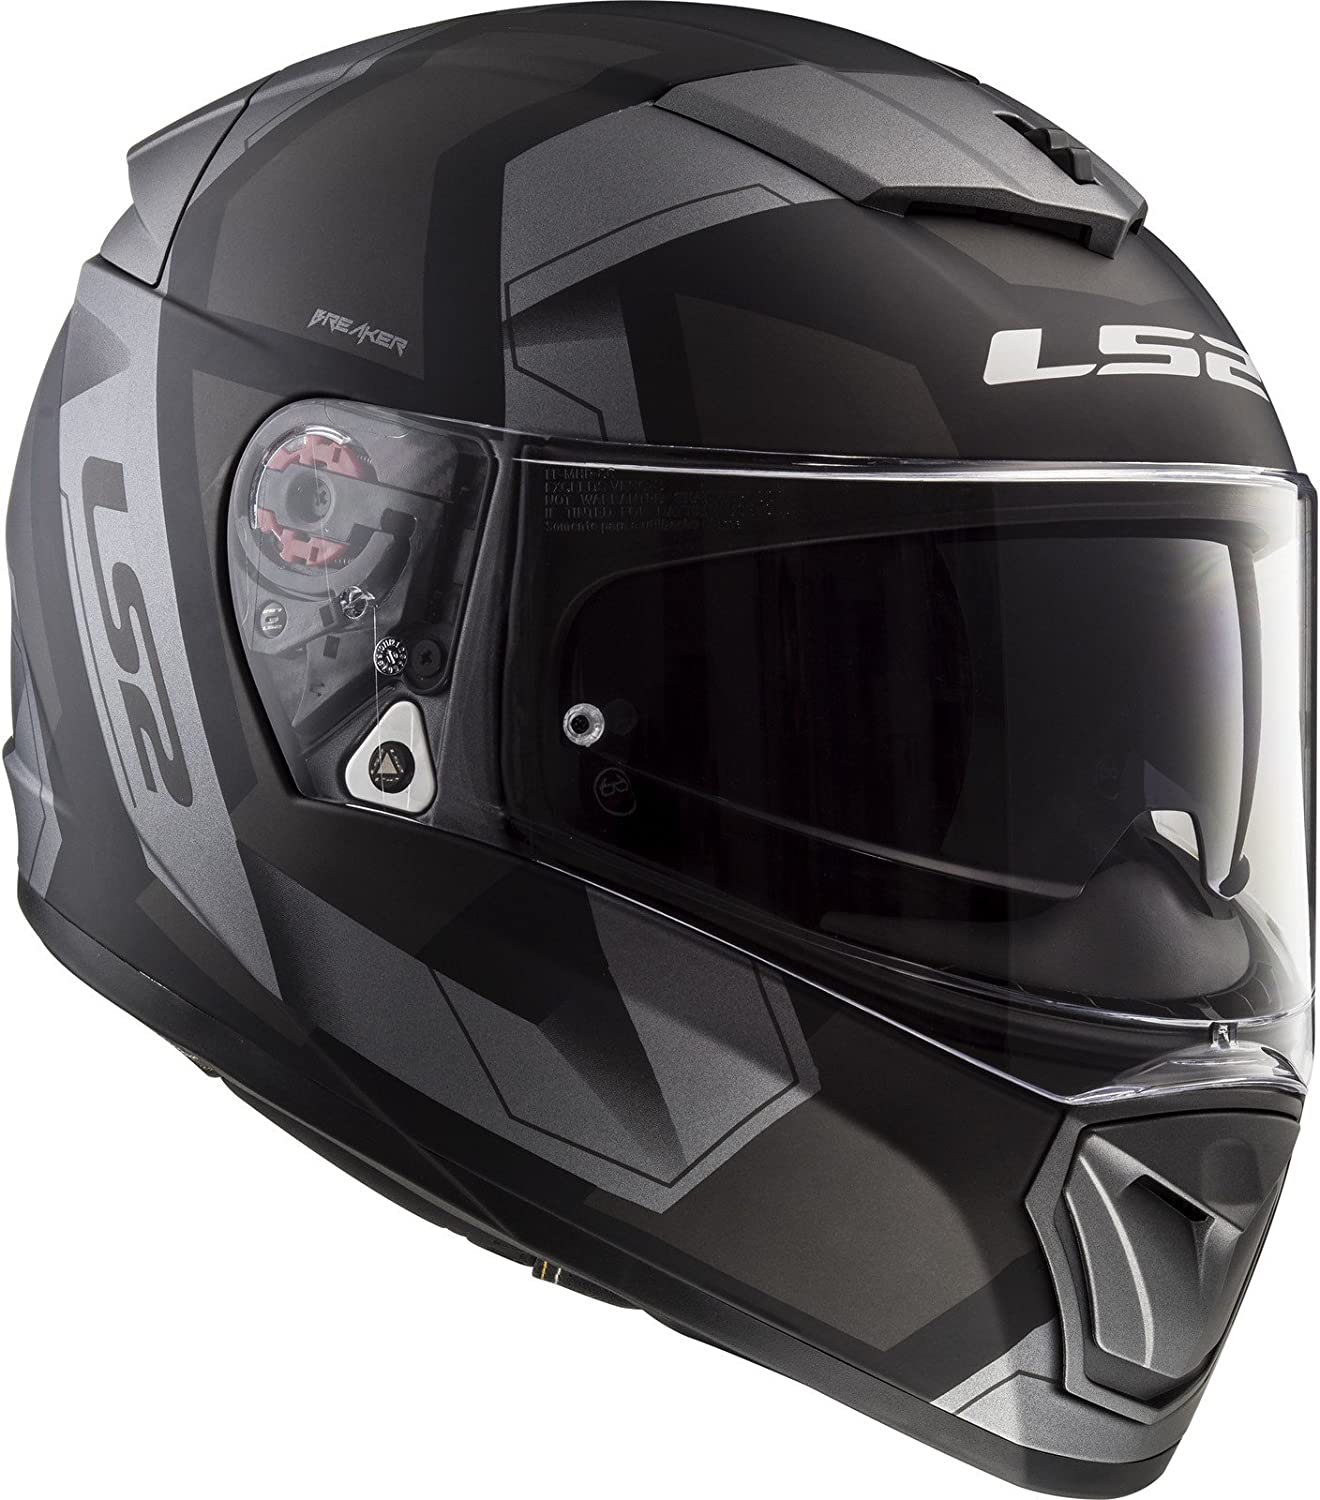 Casco integral BREAKER FF390 PHYSICS COLOR NEG//TIT TALLA XXS LS2-103902607XXS//162 LS2-103902607XXS//162